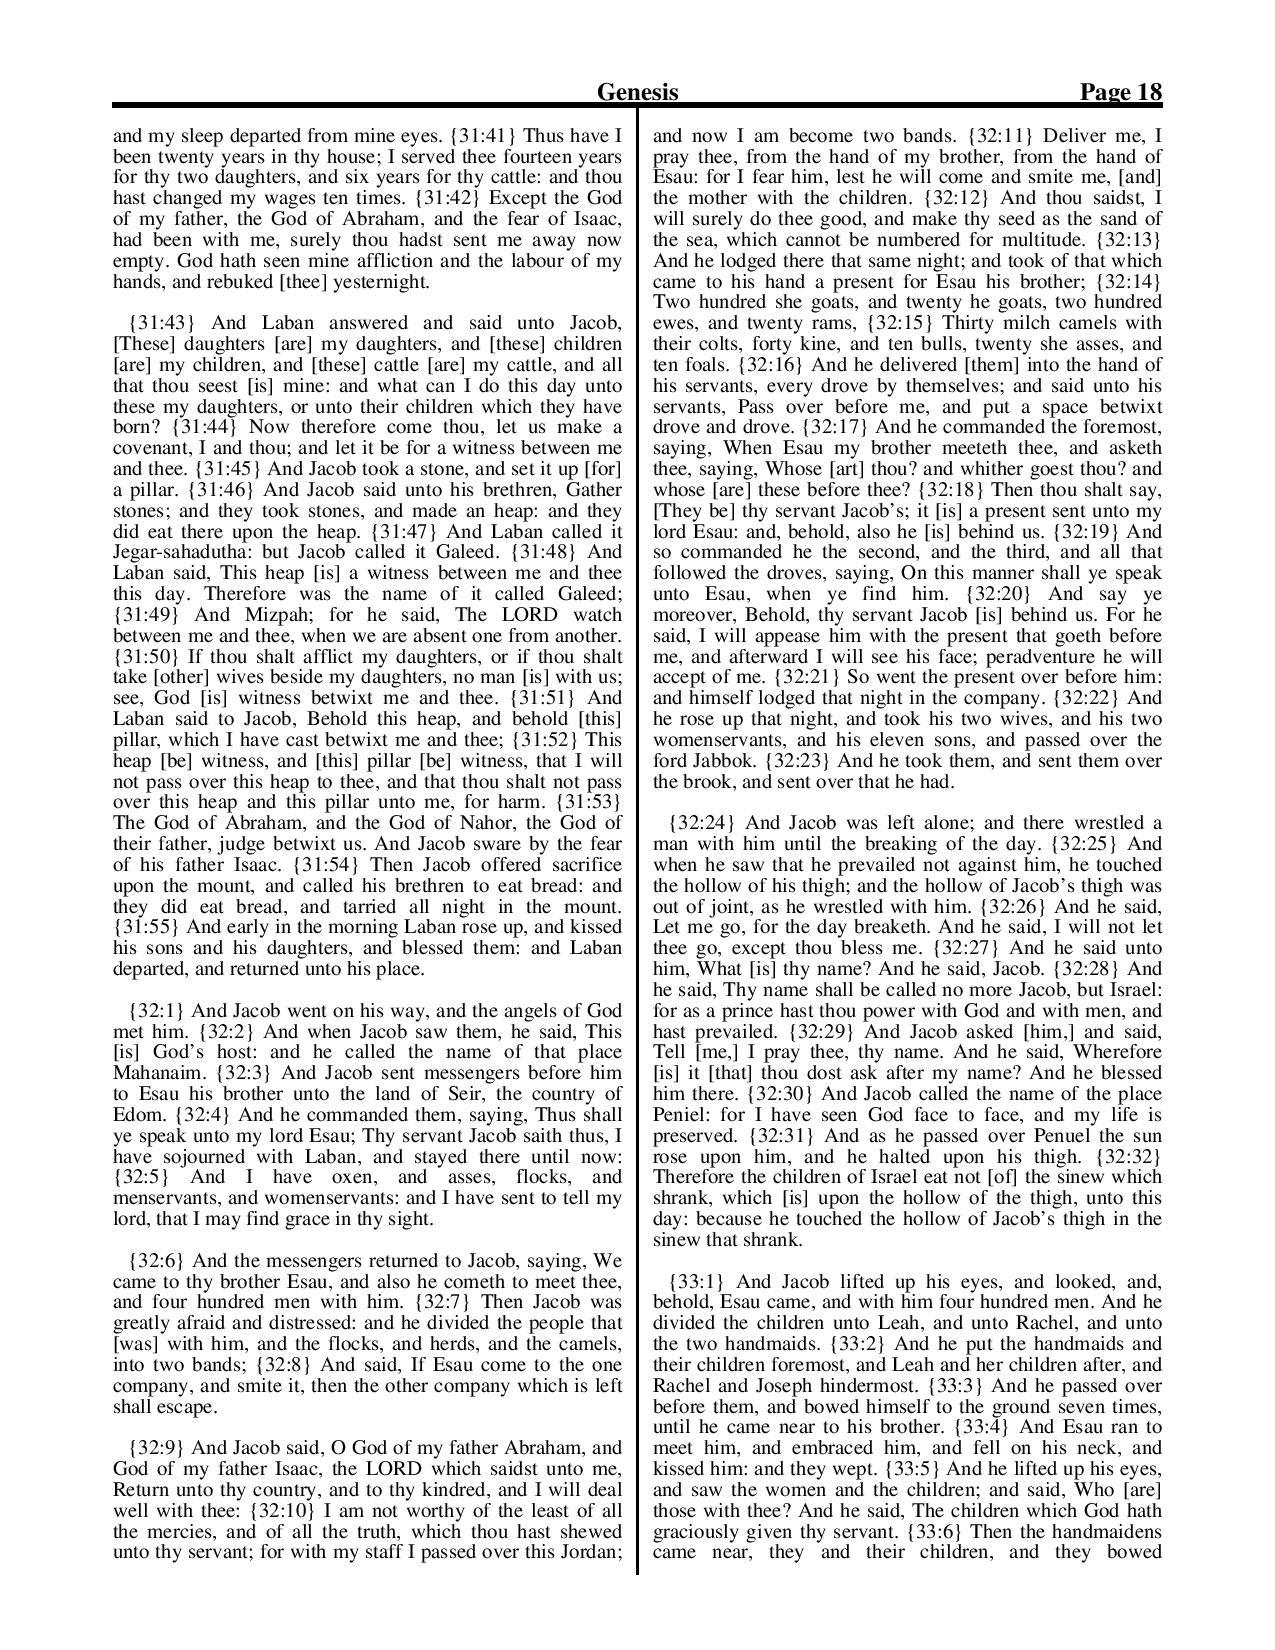 King-James-Bible-KJV-Bible-PDF-page-039